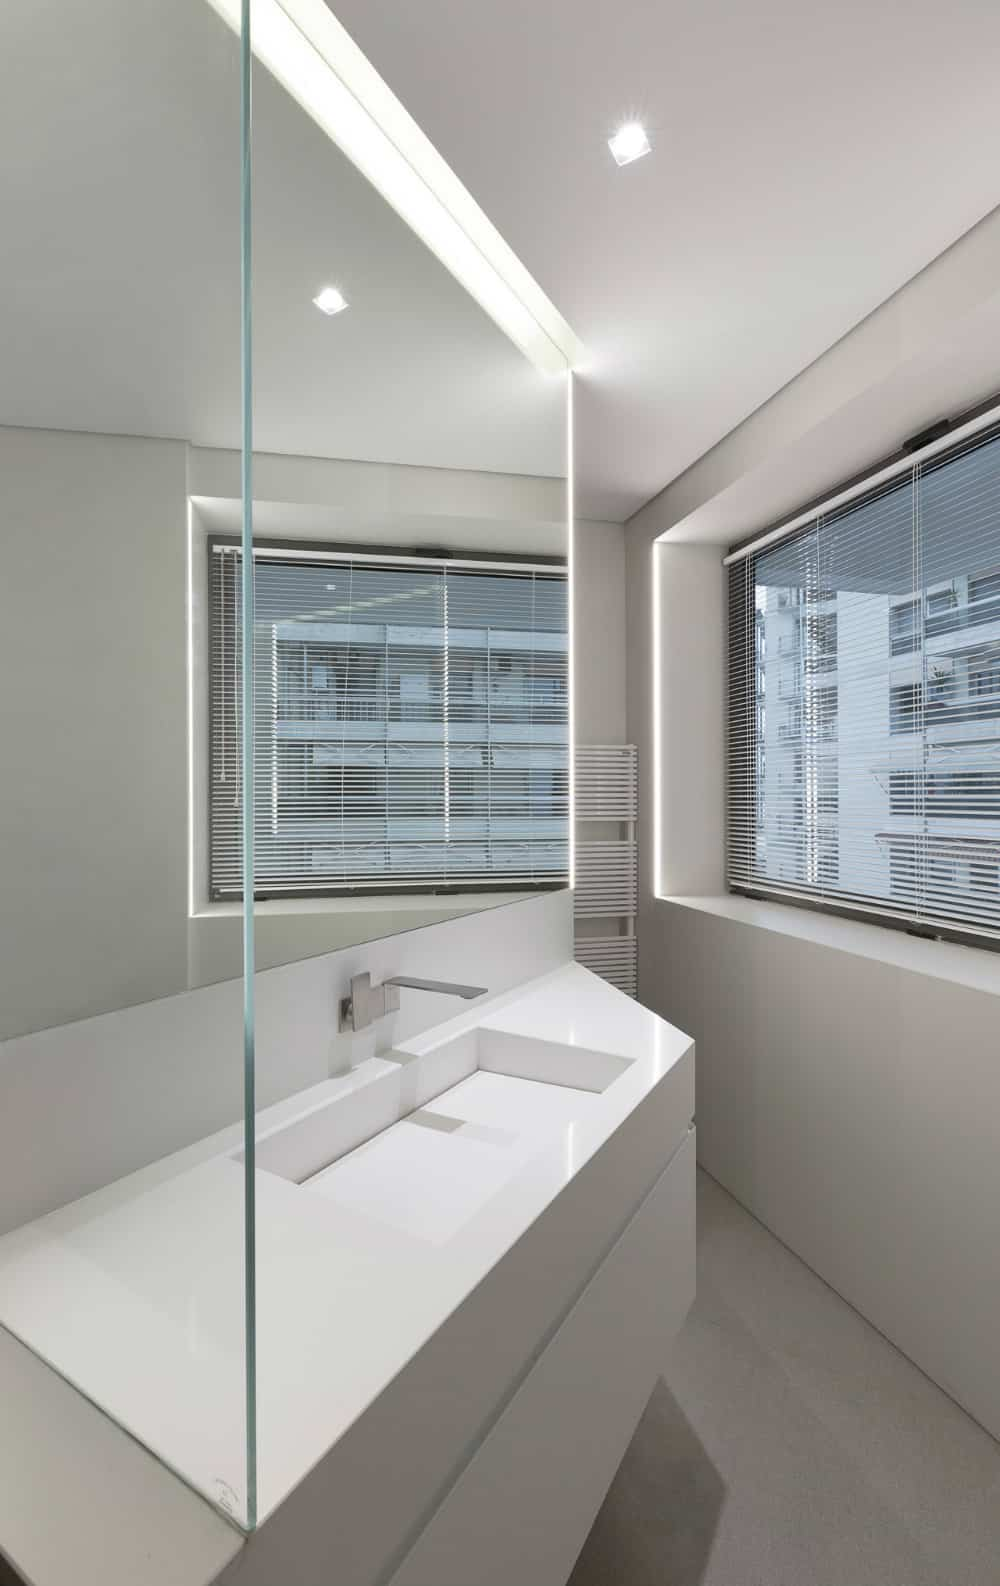 Generous bathroom window provides privacy instantly with simple blinds